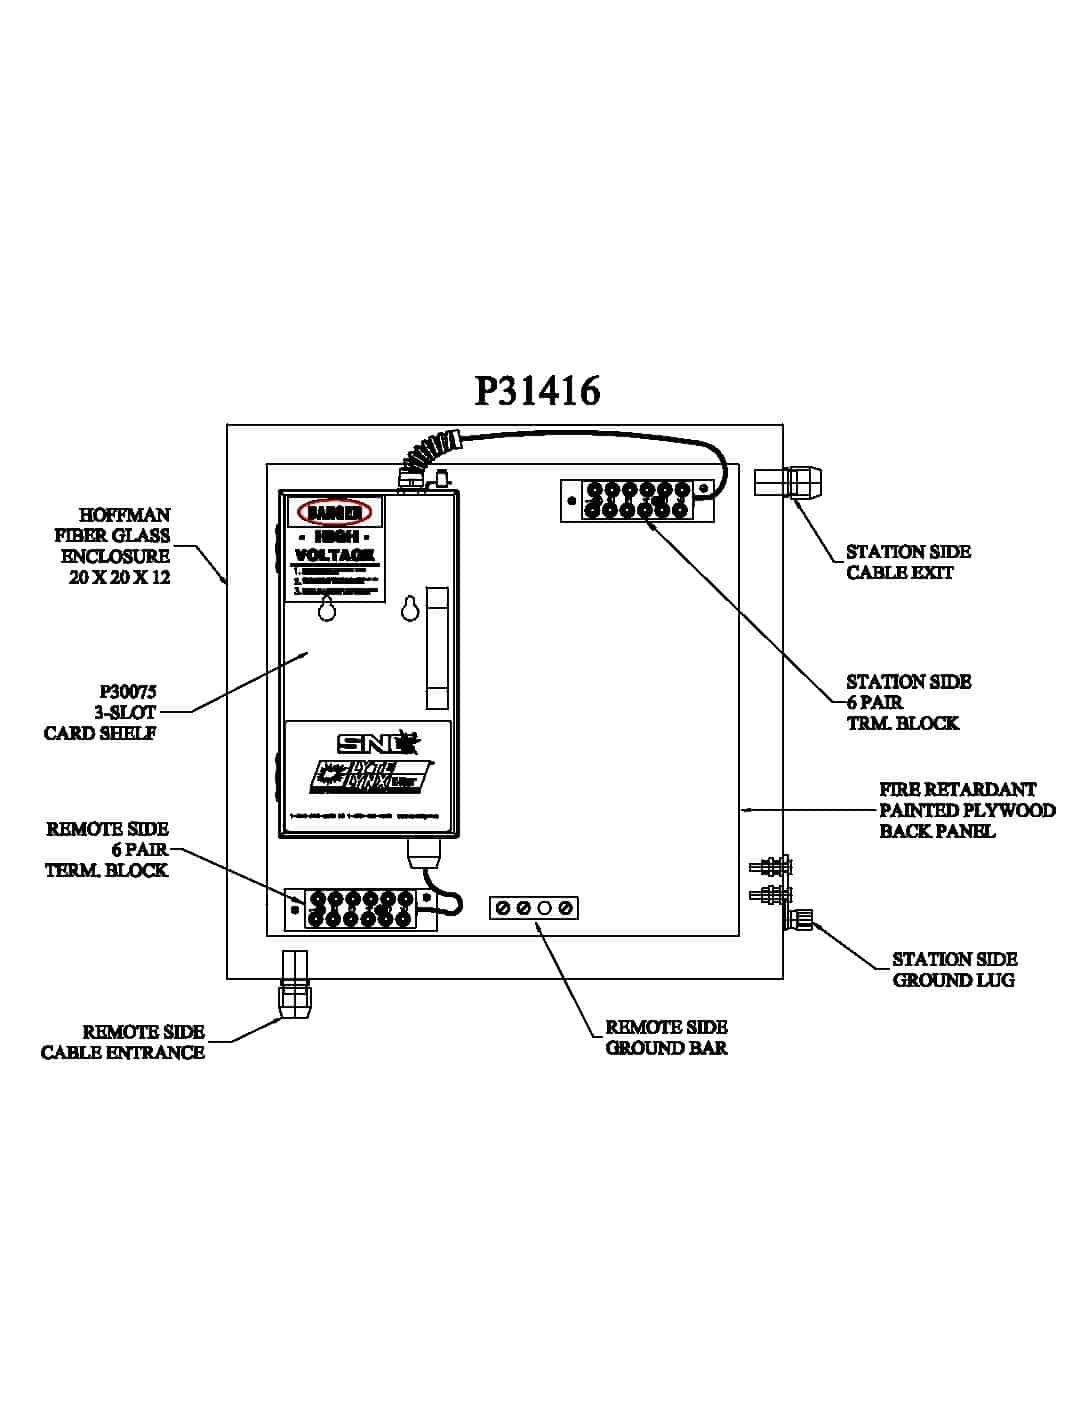 P31416 Turnkey Protection Packages – 3 slot PDF thumbnail